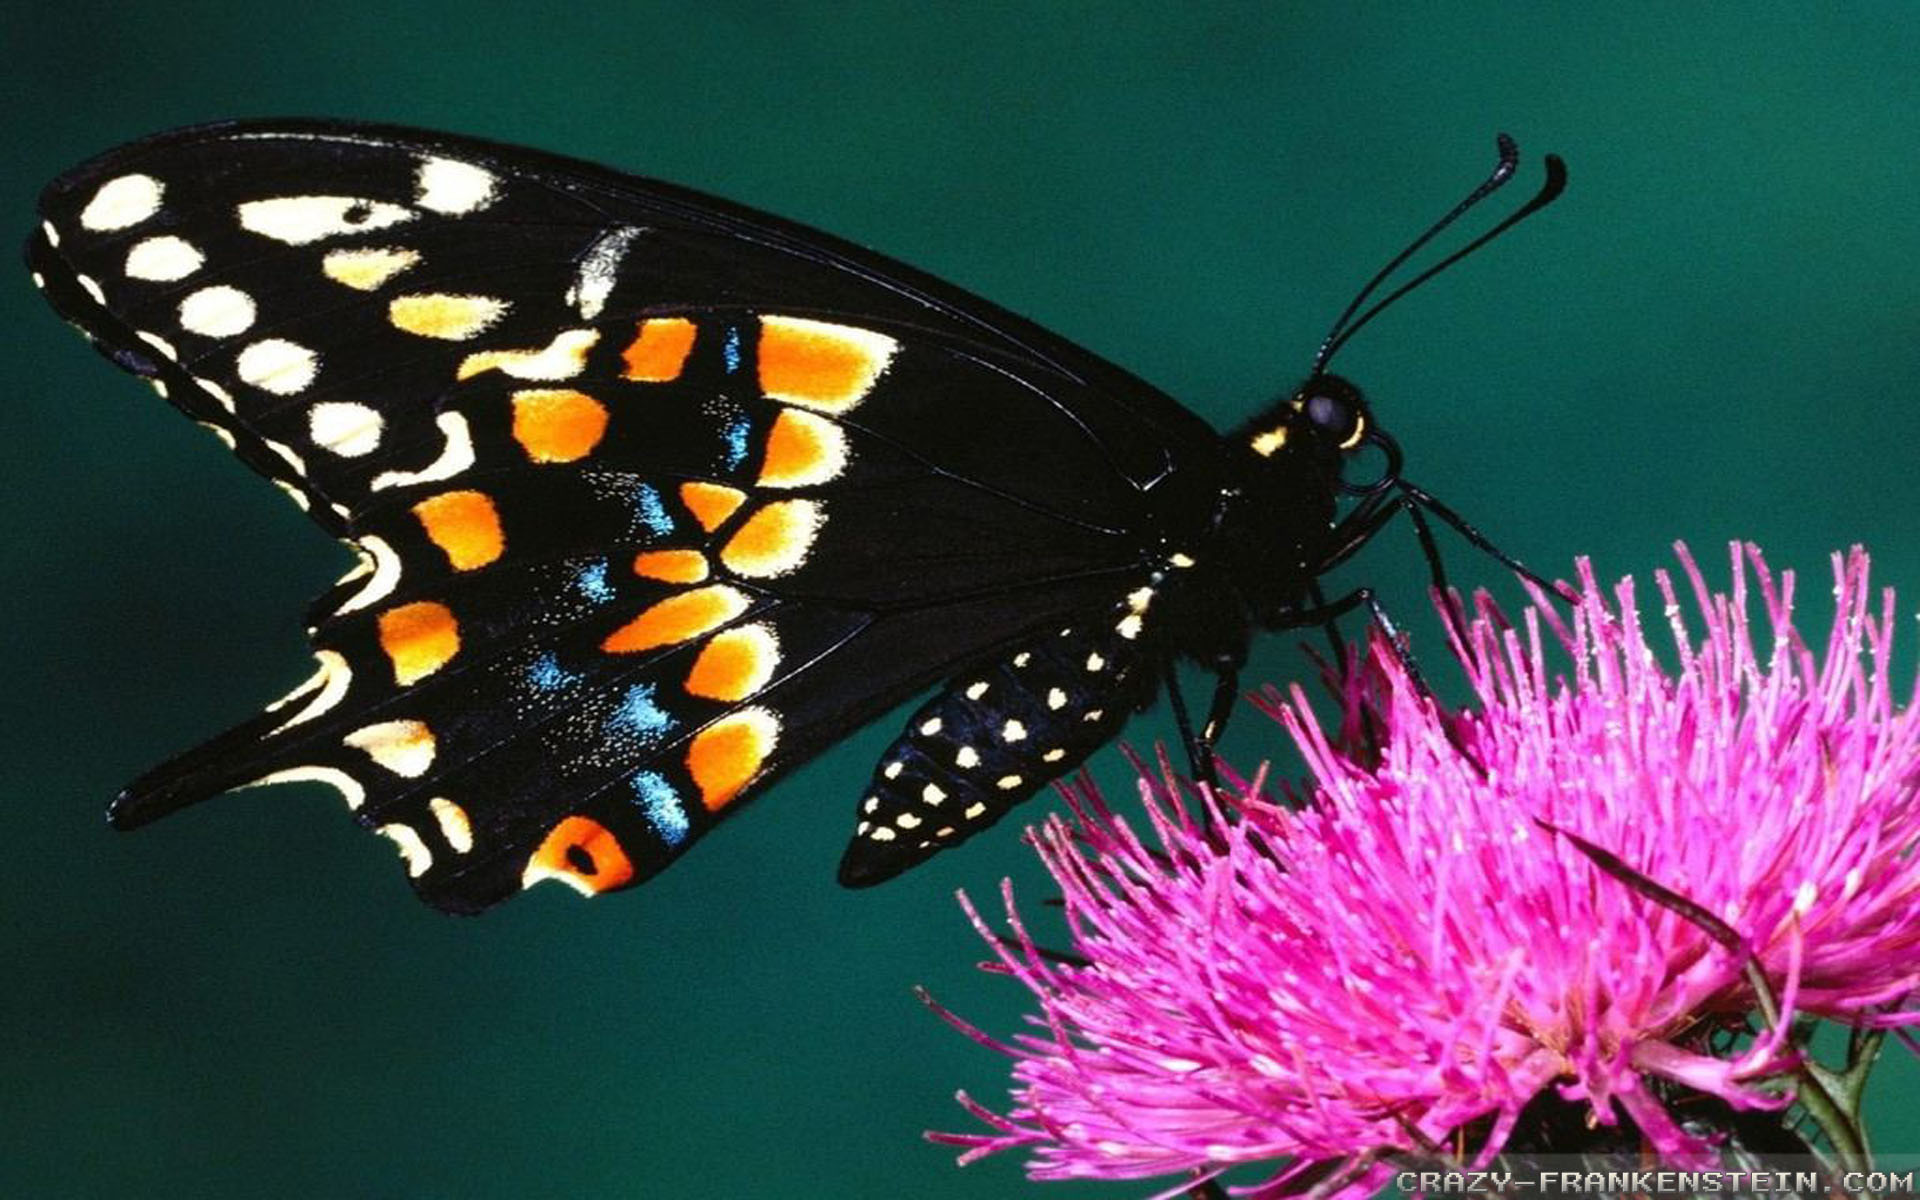 1920x1200 2160x1920 Wallpaper Butterflies Neon Light Abstract Black Background Hd Picture Image